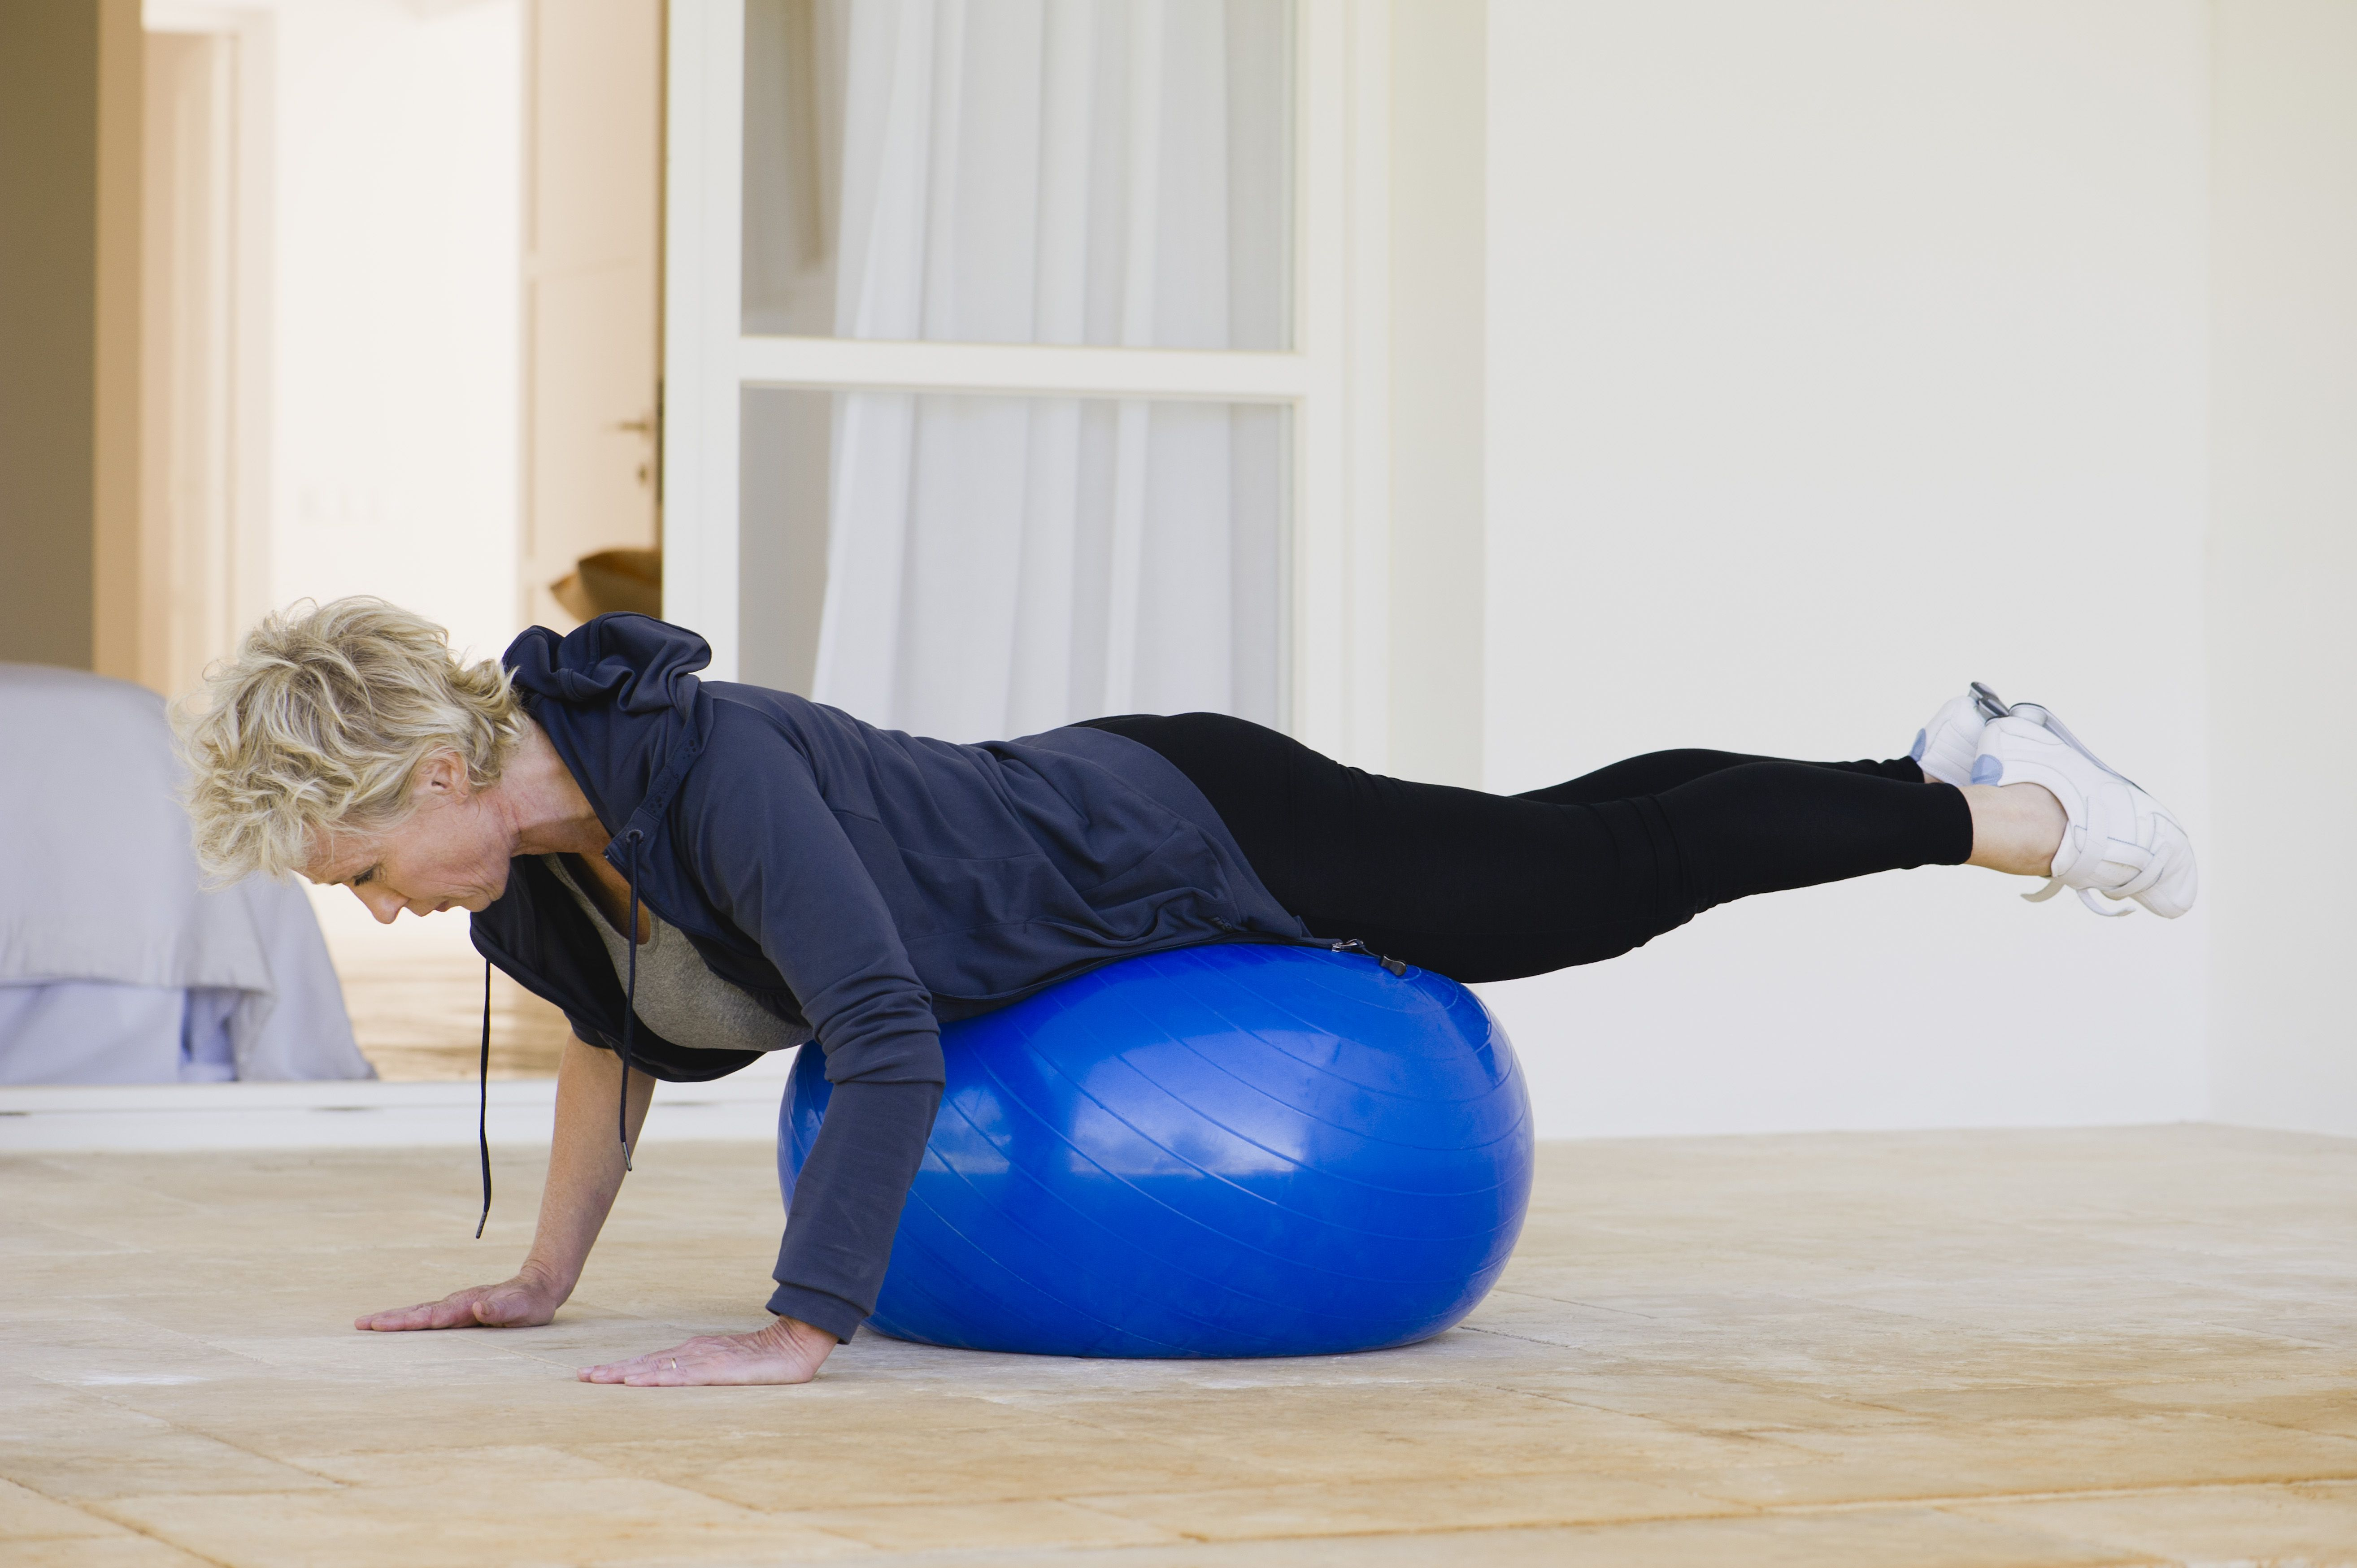 Mature woman doing pilates exercise on fitness ball